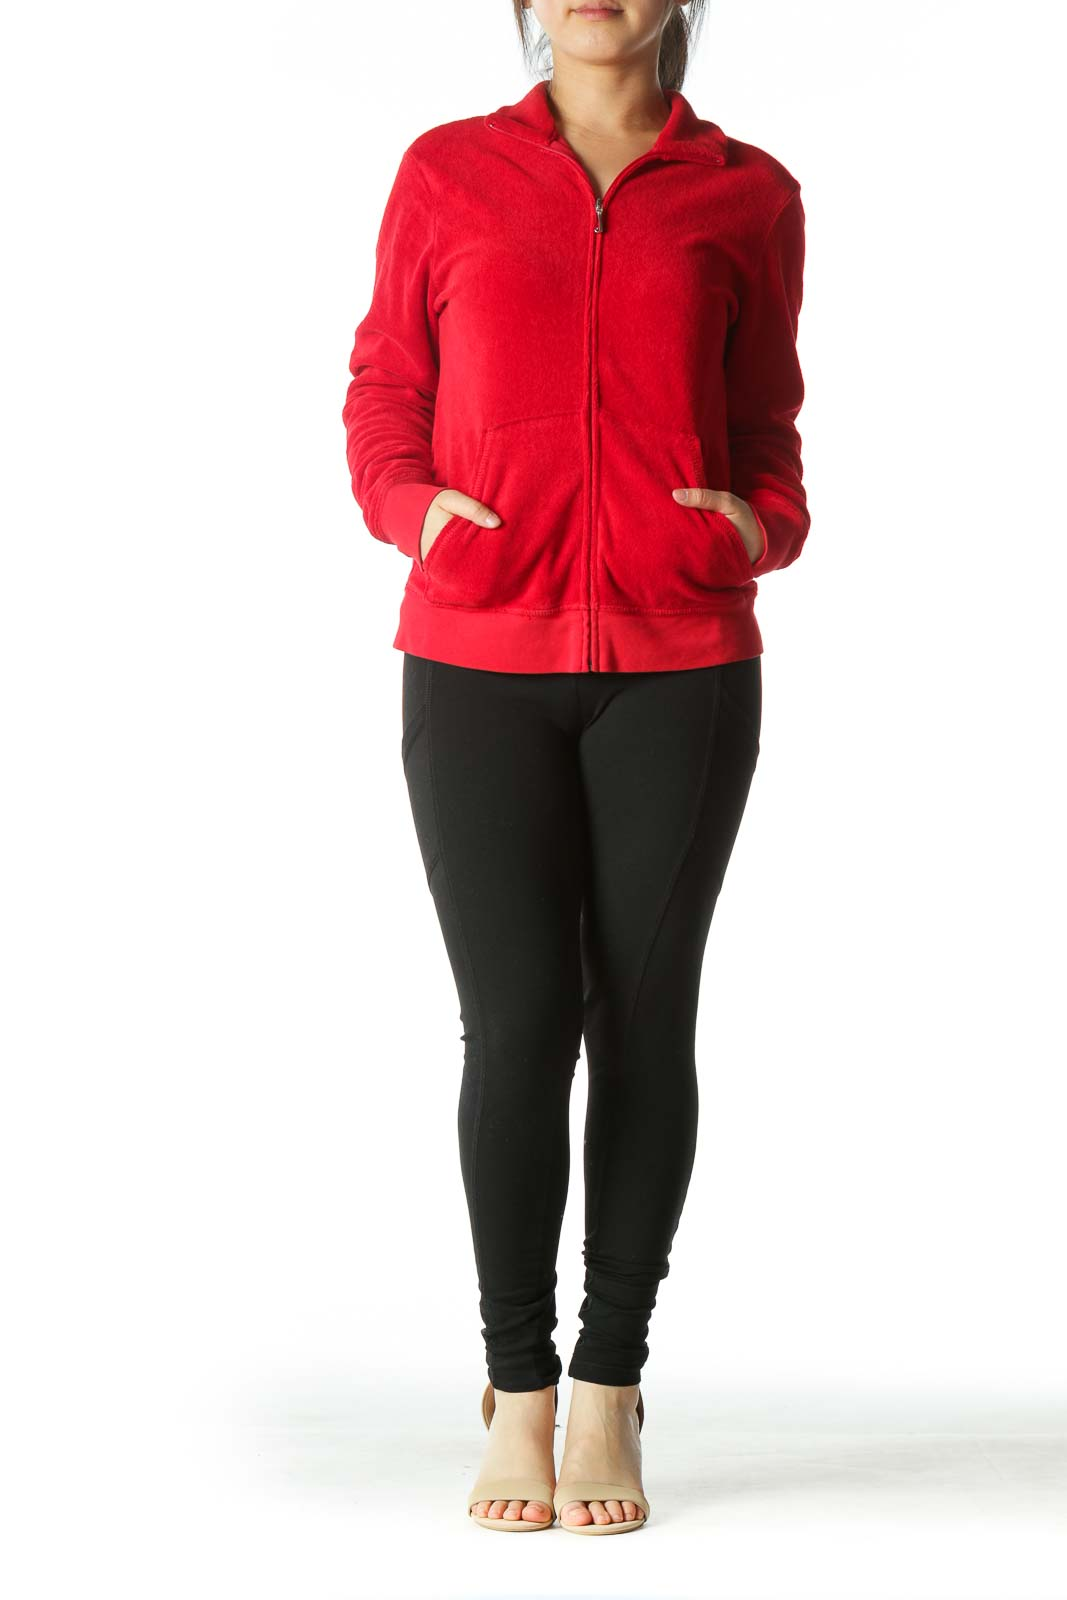 Red Zippered Pocketed High-Neck Fitted Jacket